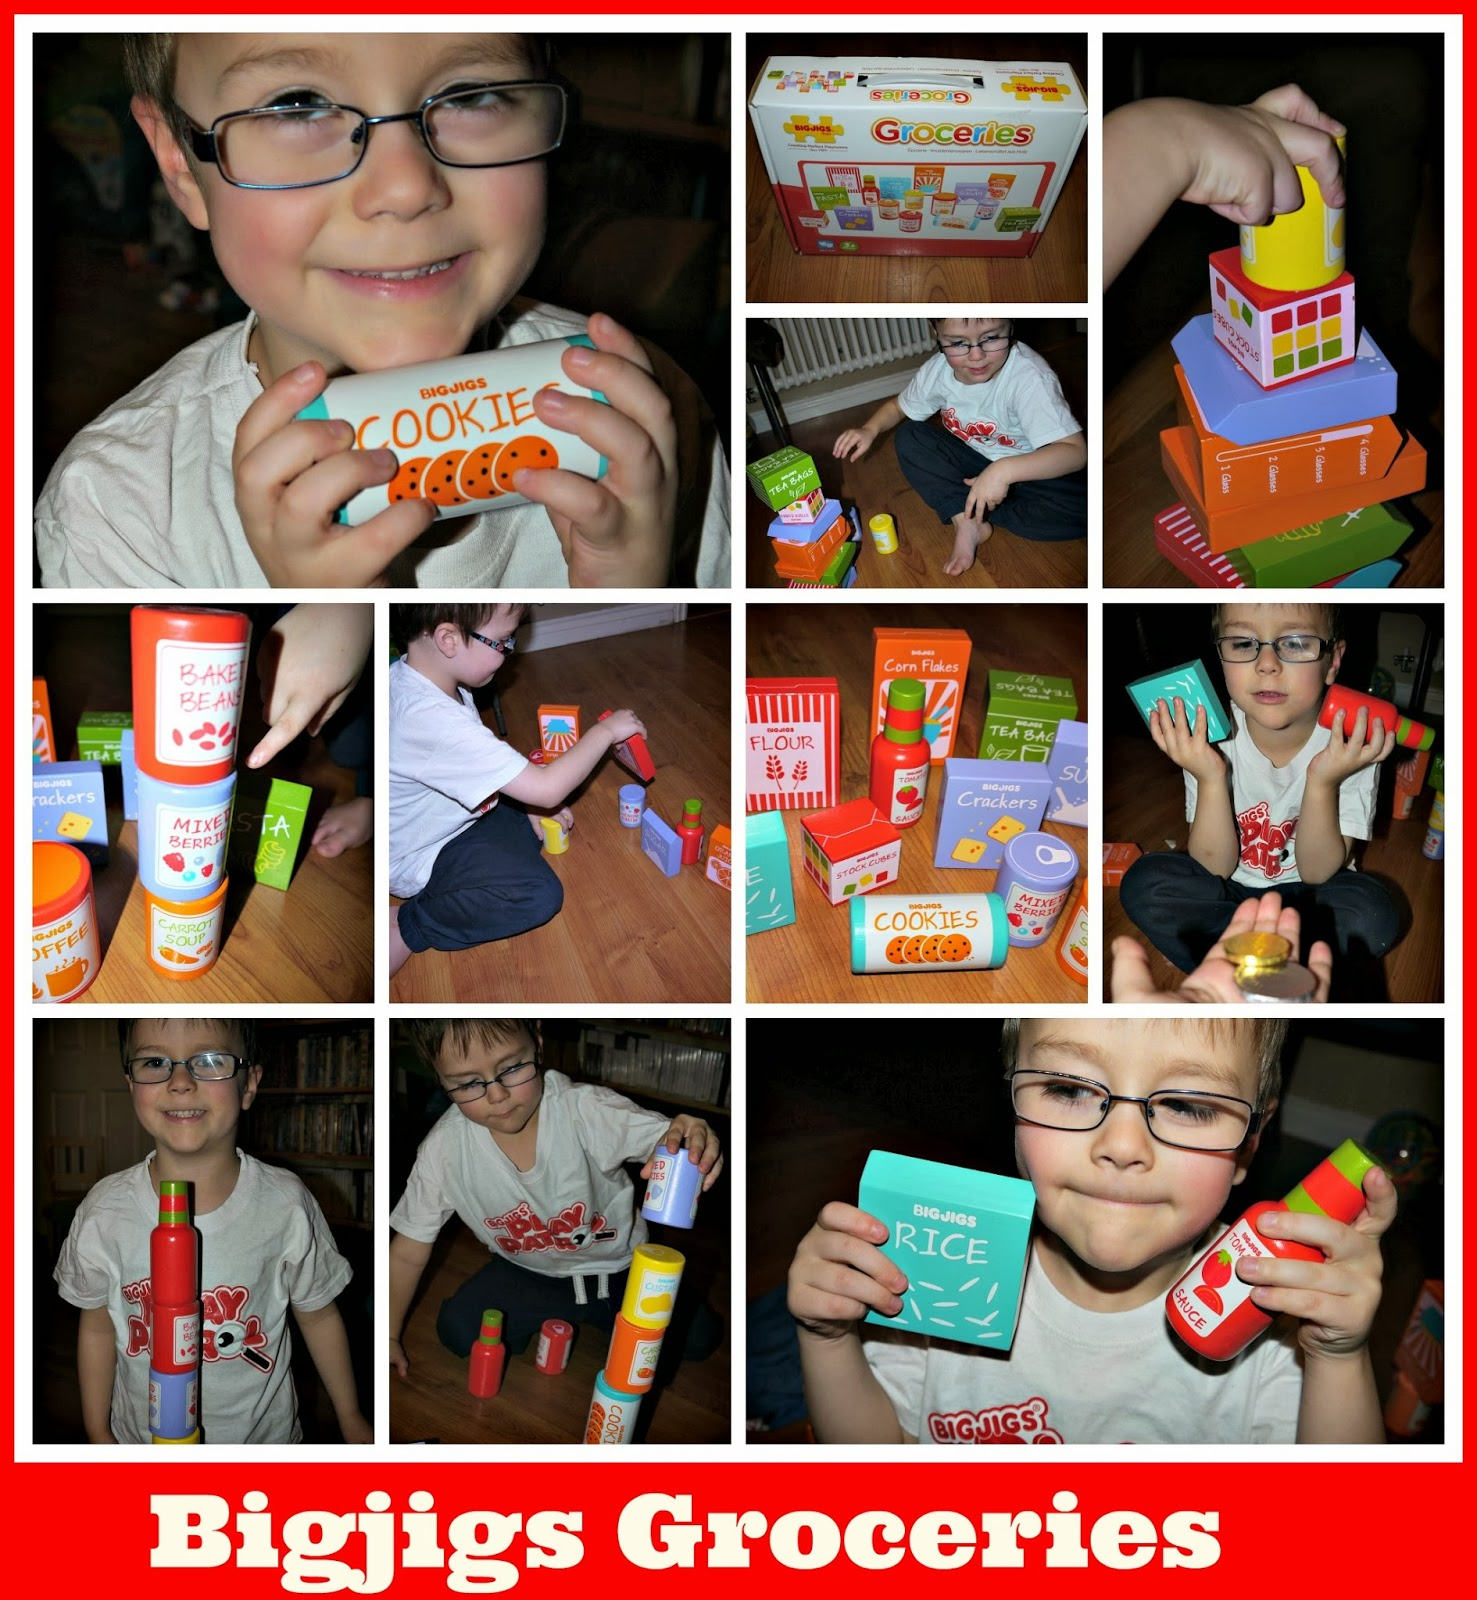 toy kitchen, pretend play, shopkeepers